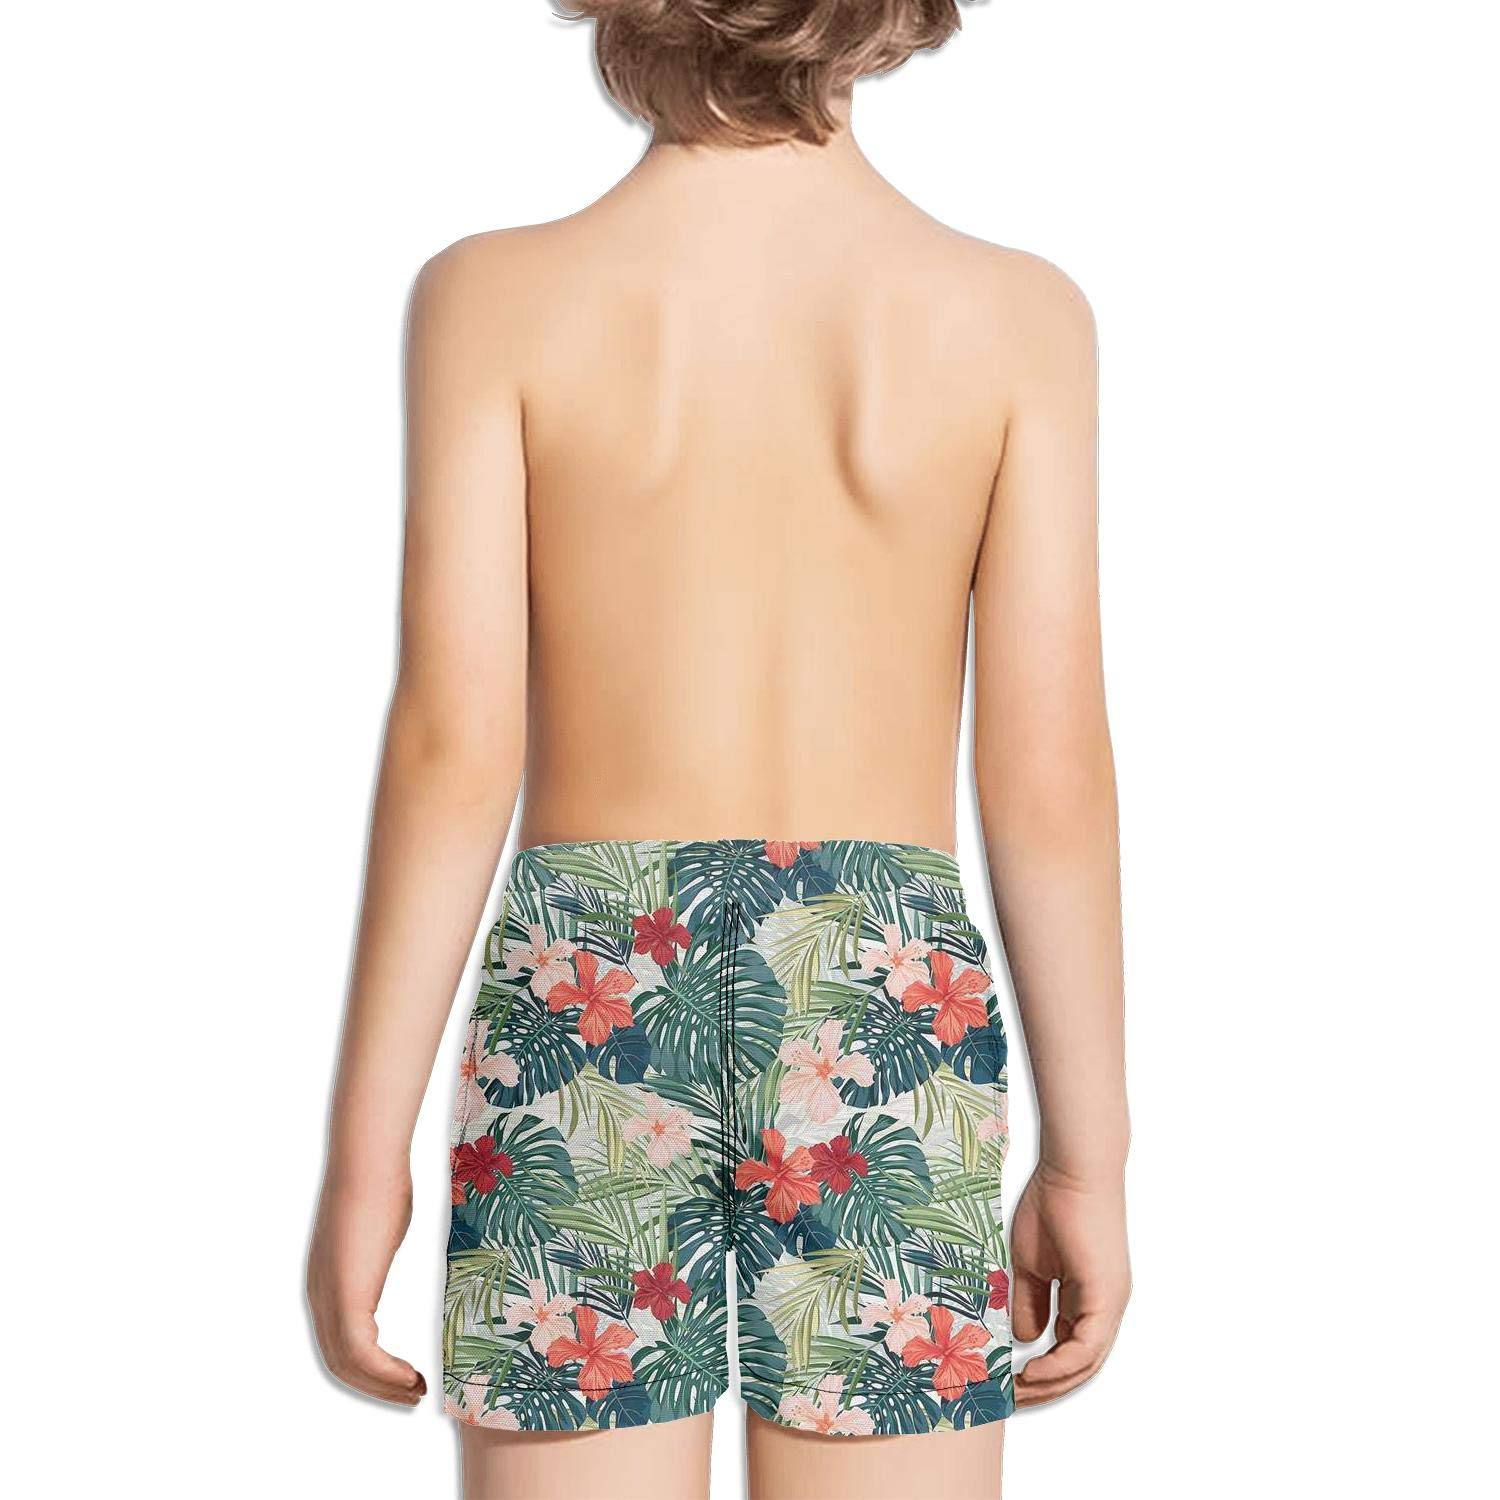 Etstk Summer Beach Holiday Themed Hibiscus Palm Leaves Kids Quick Dry Beach Shorts for Students